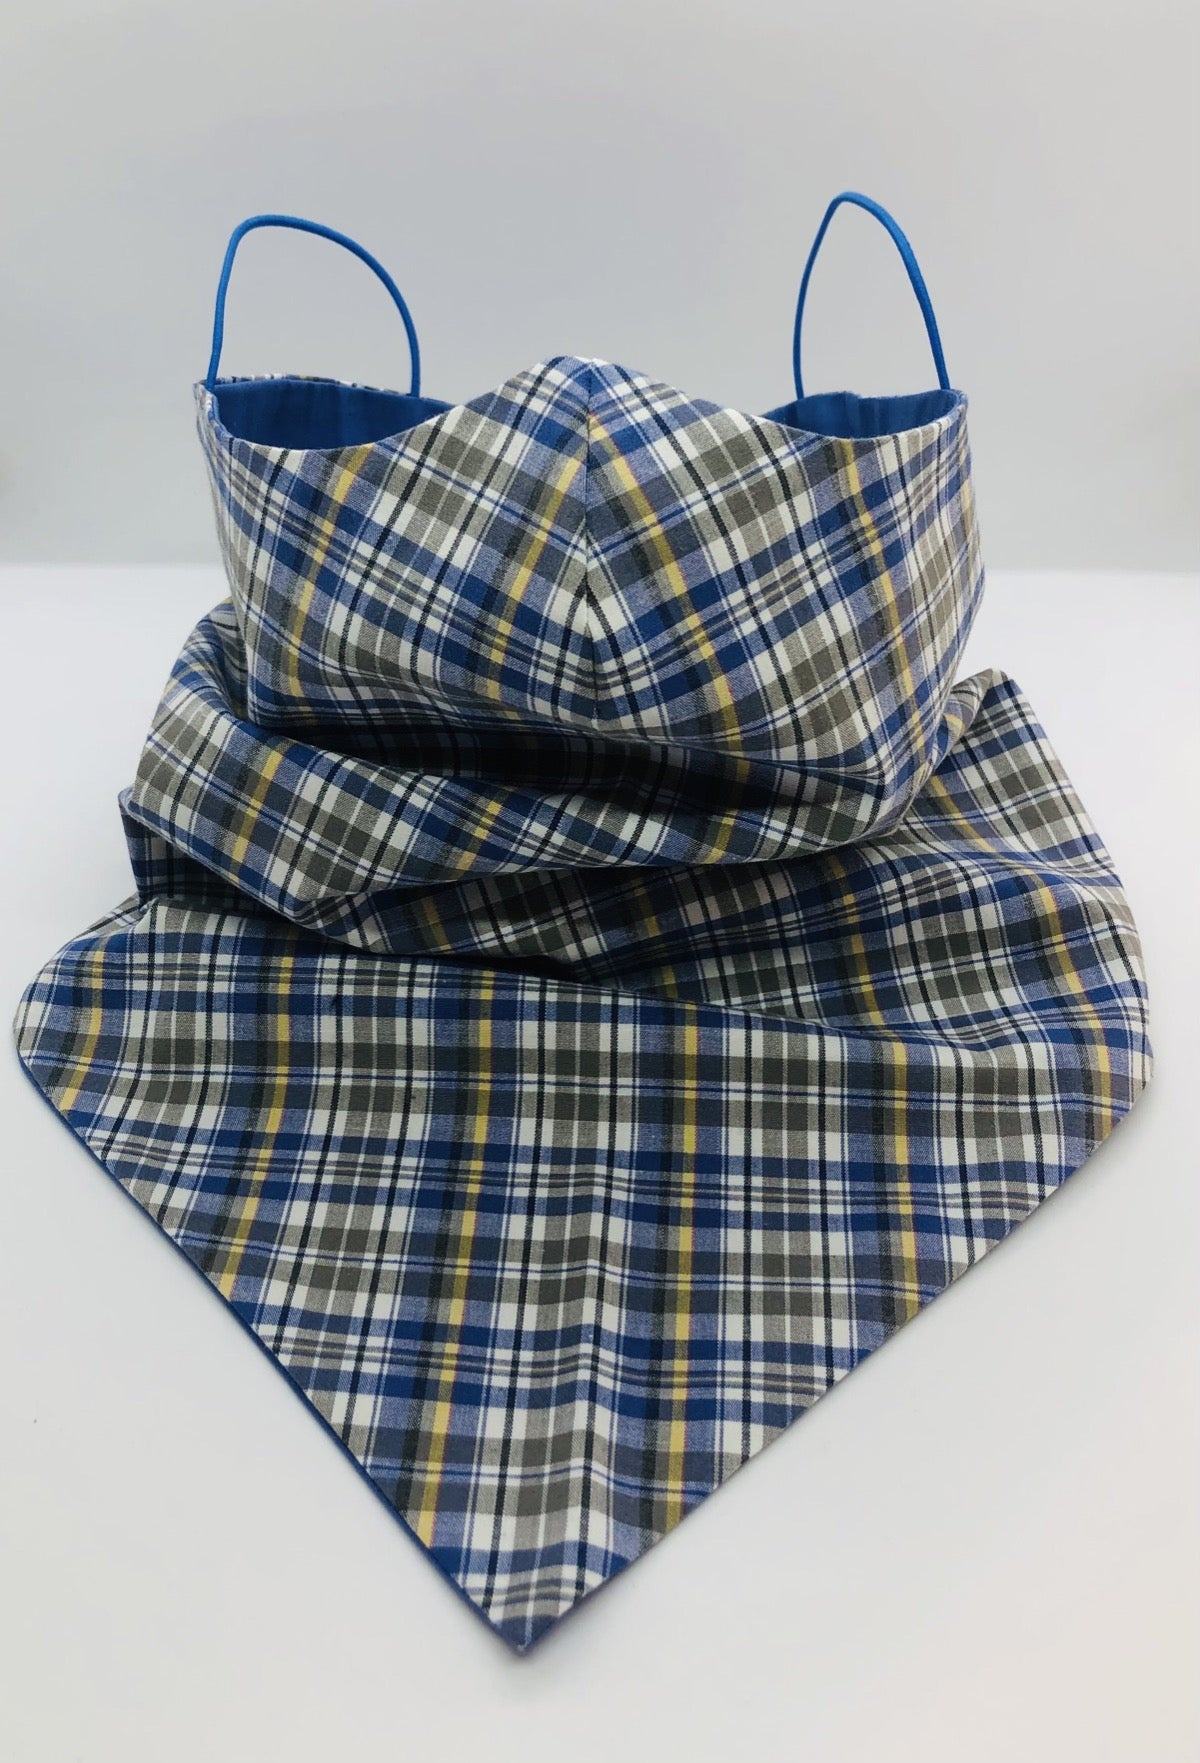 Cotton Plaid Blues Bandana by Ludmila Couture